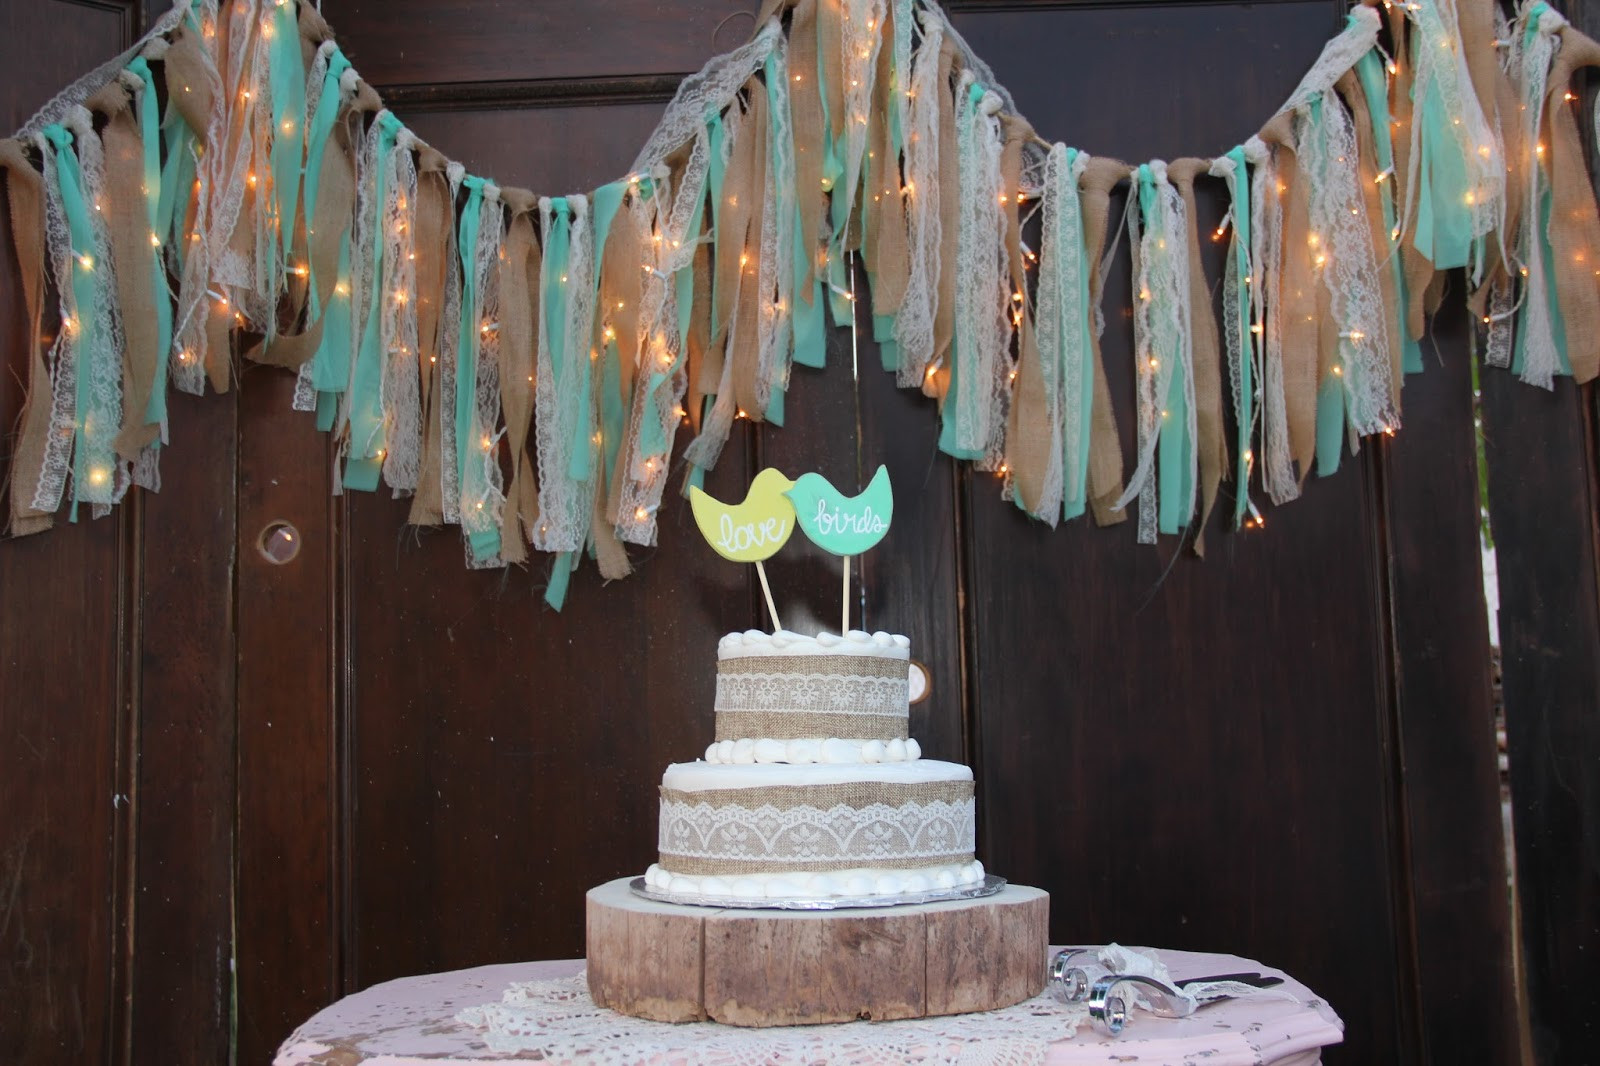 Best ideas about Wedding Backdrop DIY . Save or Pin Thrift and Craft It DIY Wedding Backdrop Now.